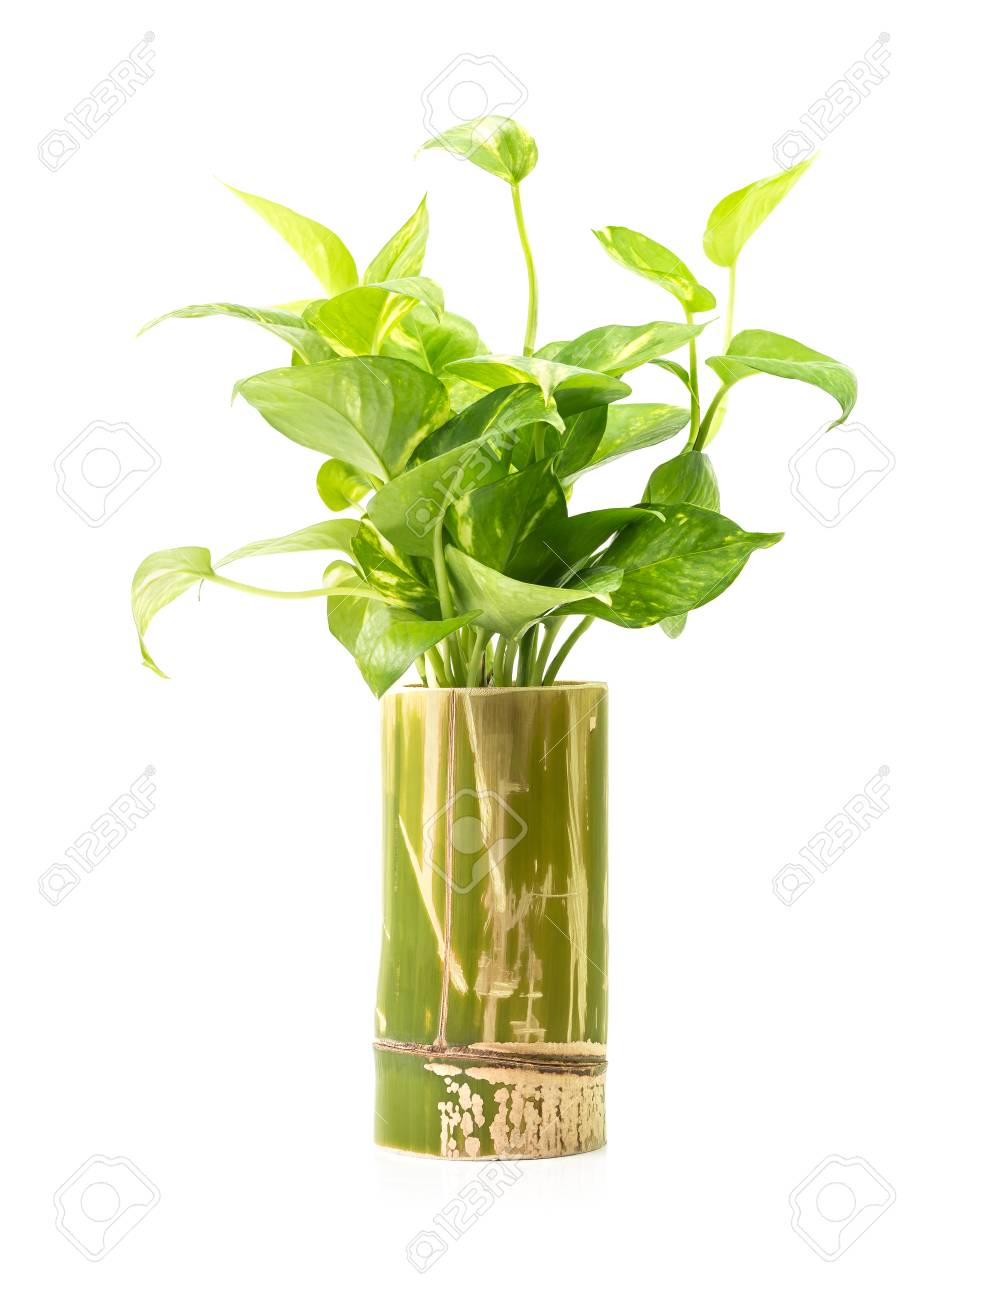 Snazzy Bamboo Wooden Vase Isolated On Backgroundwith Clipping Path Stock Photo Green Houseplant Green Houseplant Bamboo Wooden Vase Isolated On Stock houzz 01 Bamboo House Plant